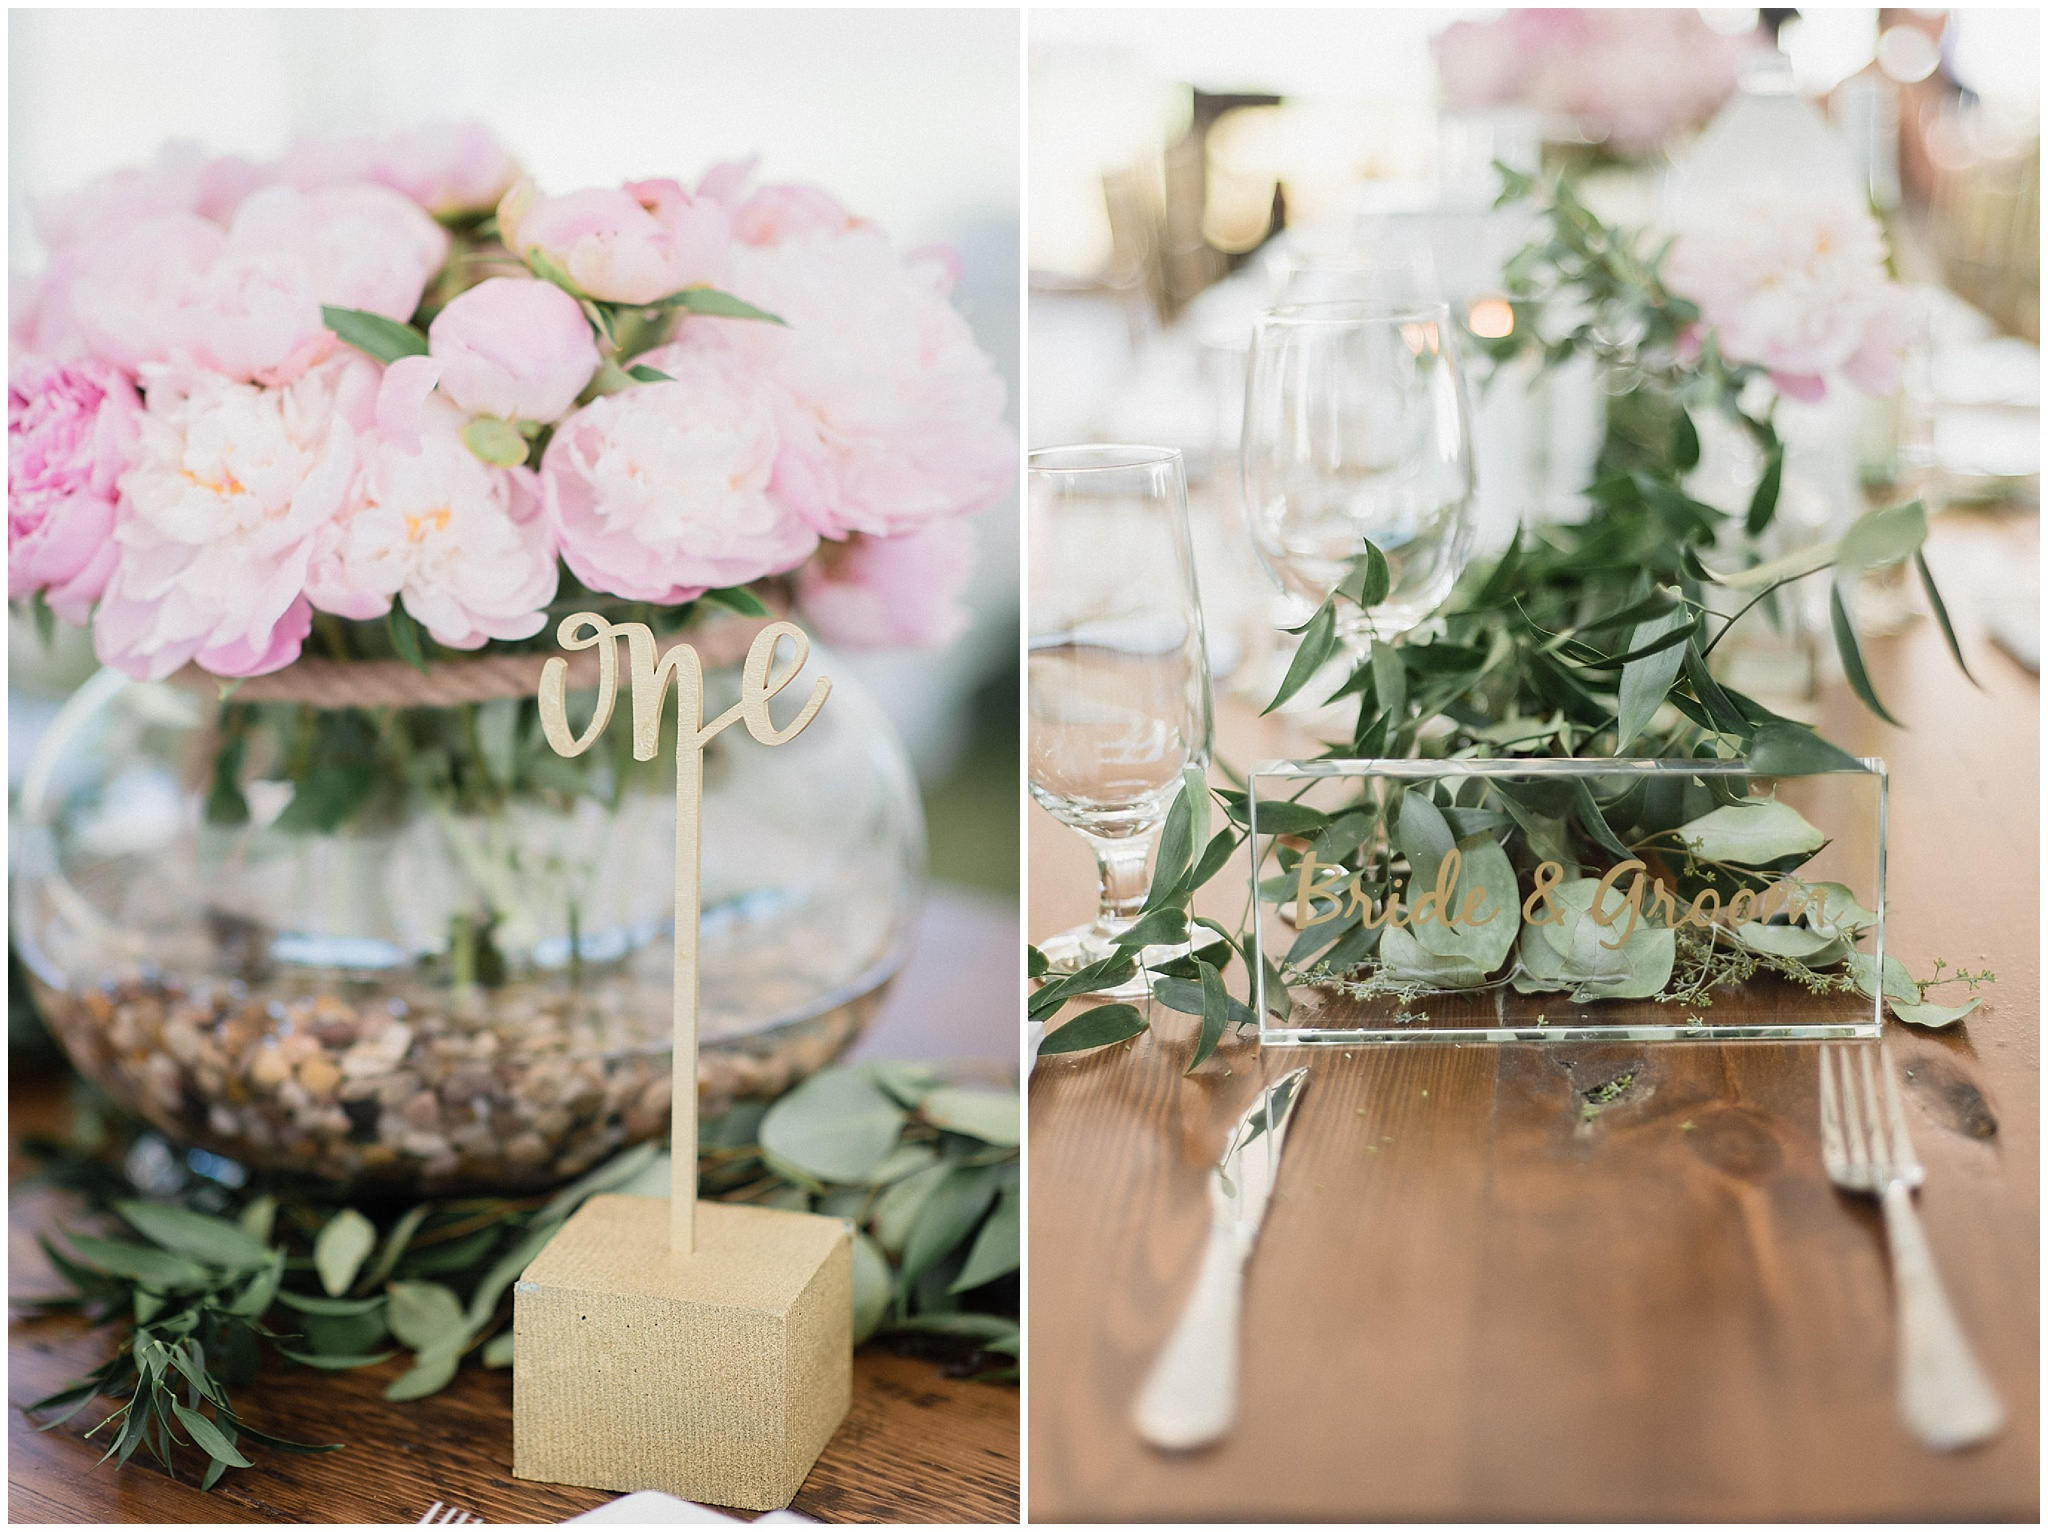 Harvest table with garland centerpeice and gold table numbers | Tent wedding on family farm in Guelph, Ontario by Jenn Kavanagh Photography